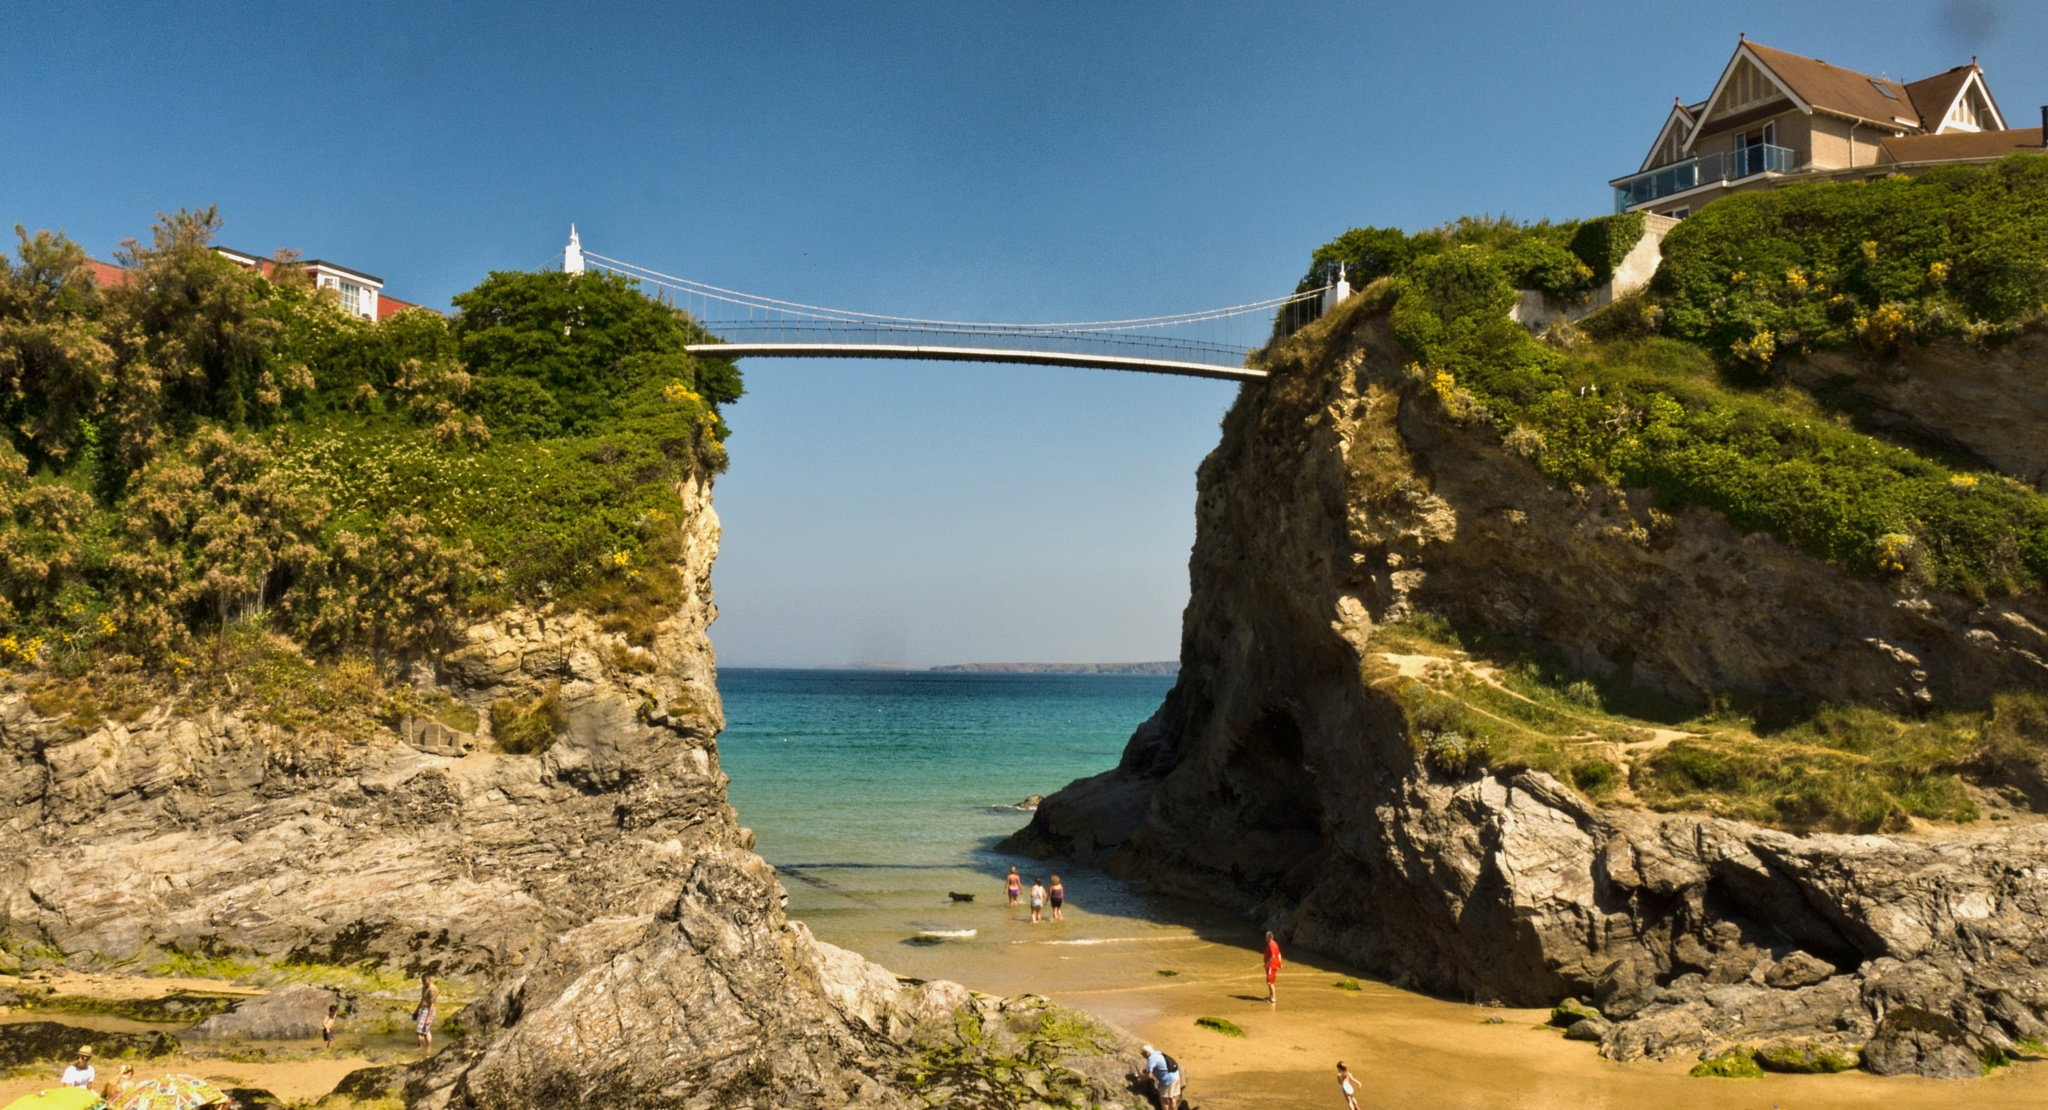 The bridge house Newquay  by Crewman